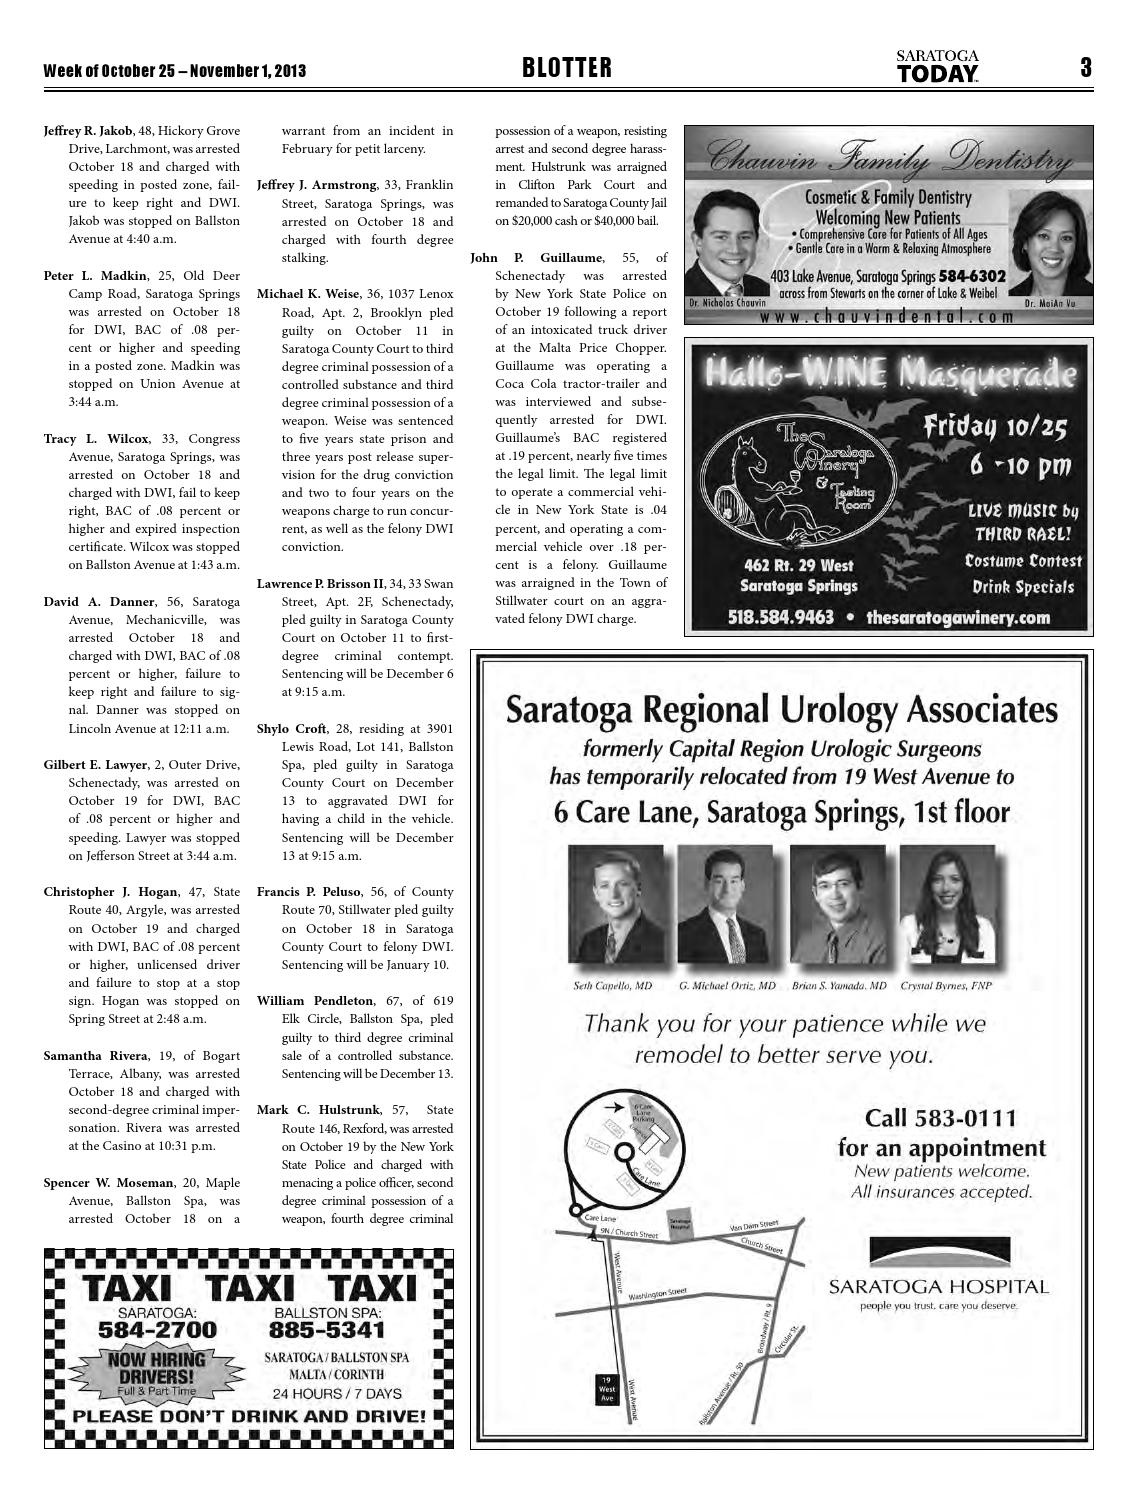 St 102513 full2 by Saratoga TODAY - issuu